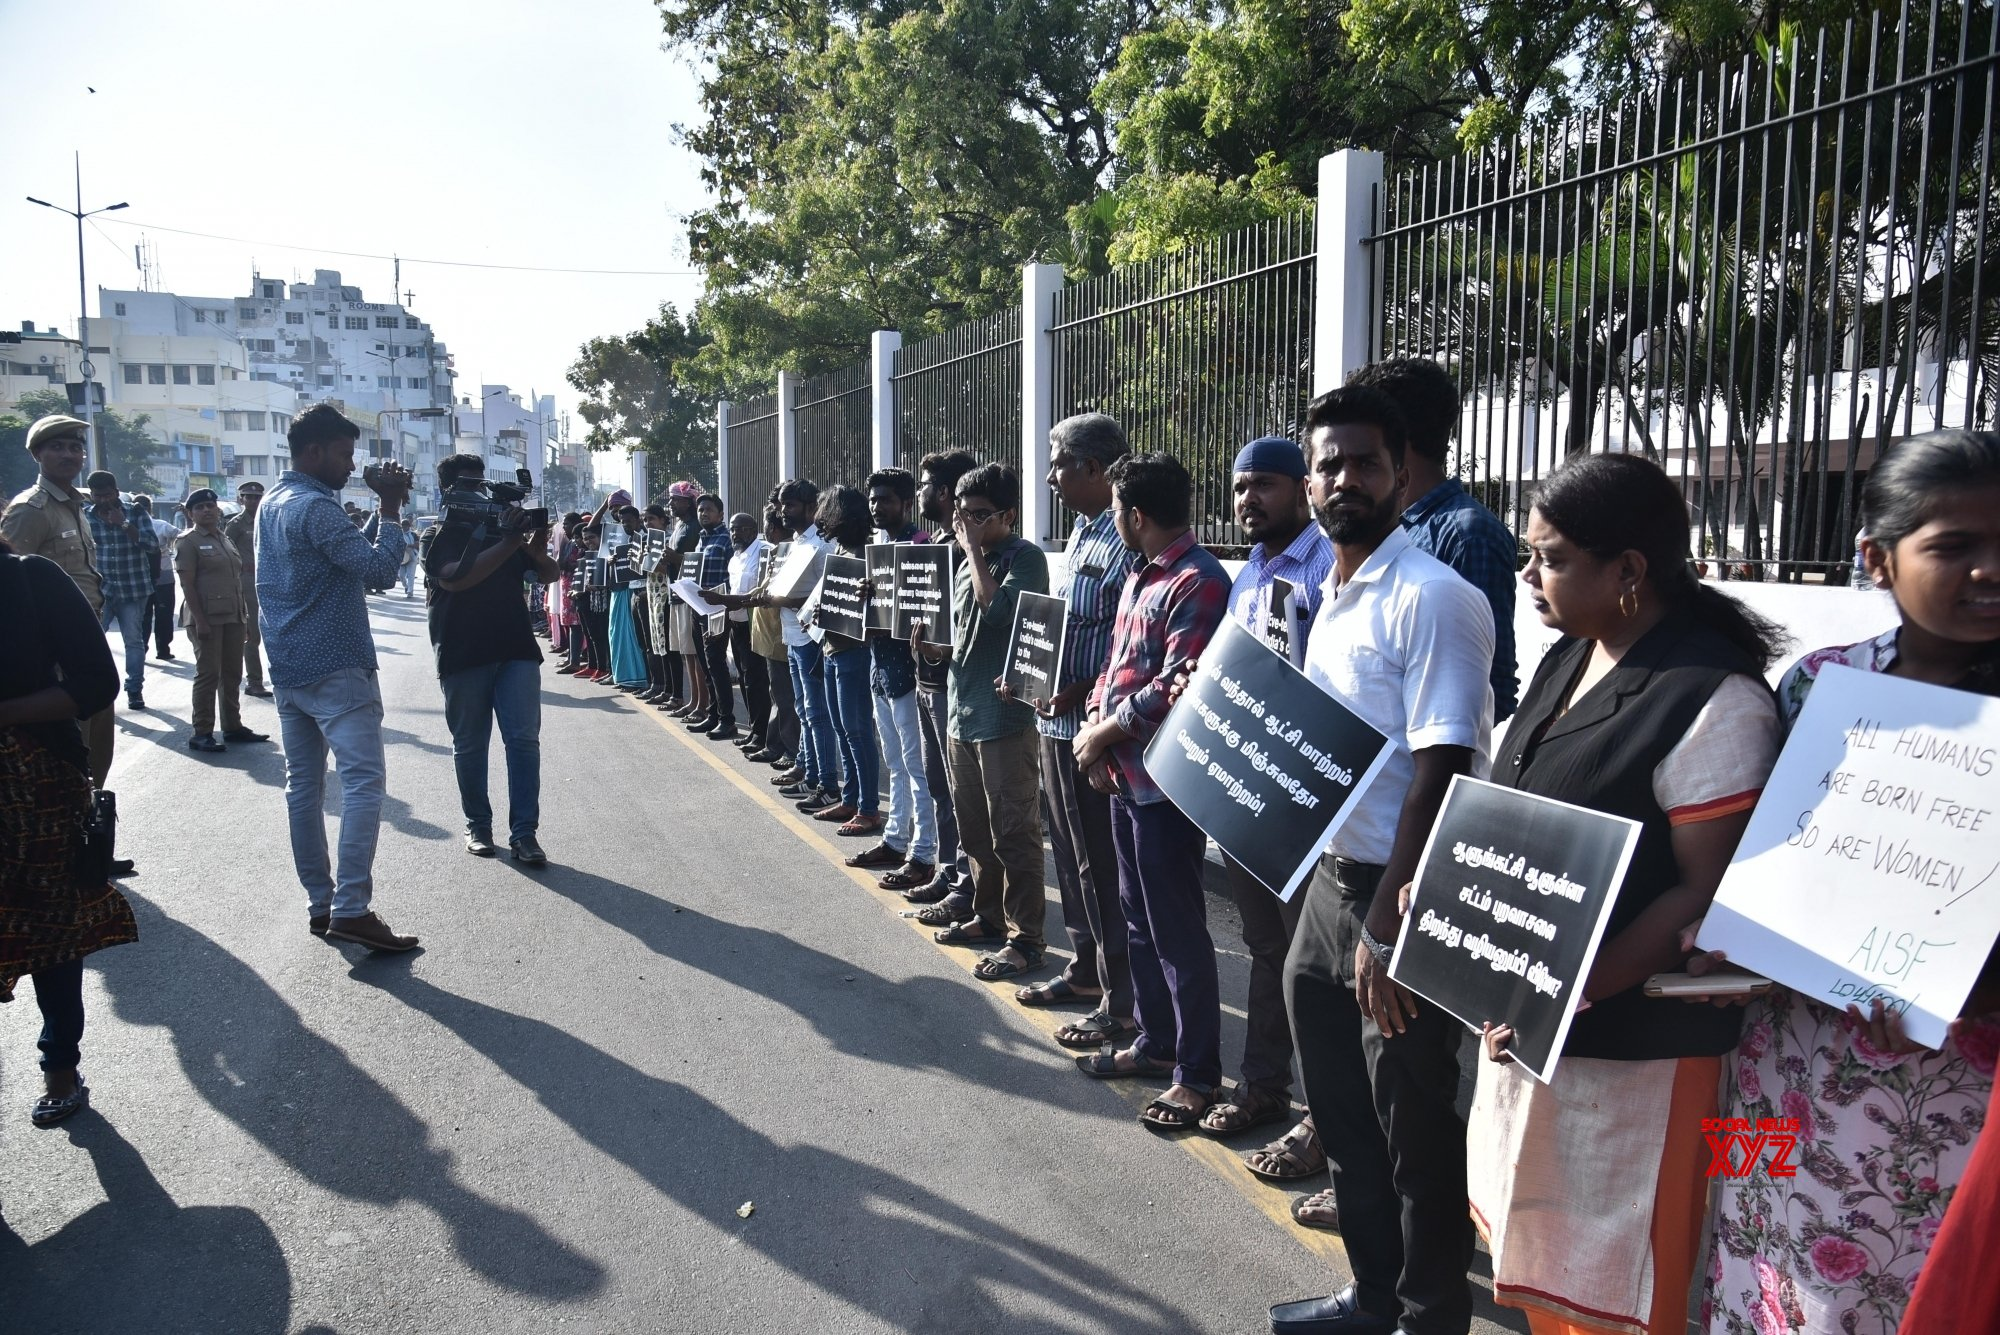 Chennai: People protest against Pollachi sexual assault case #Gallery